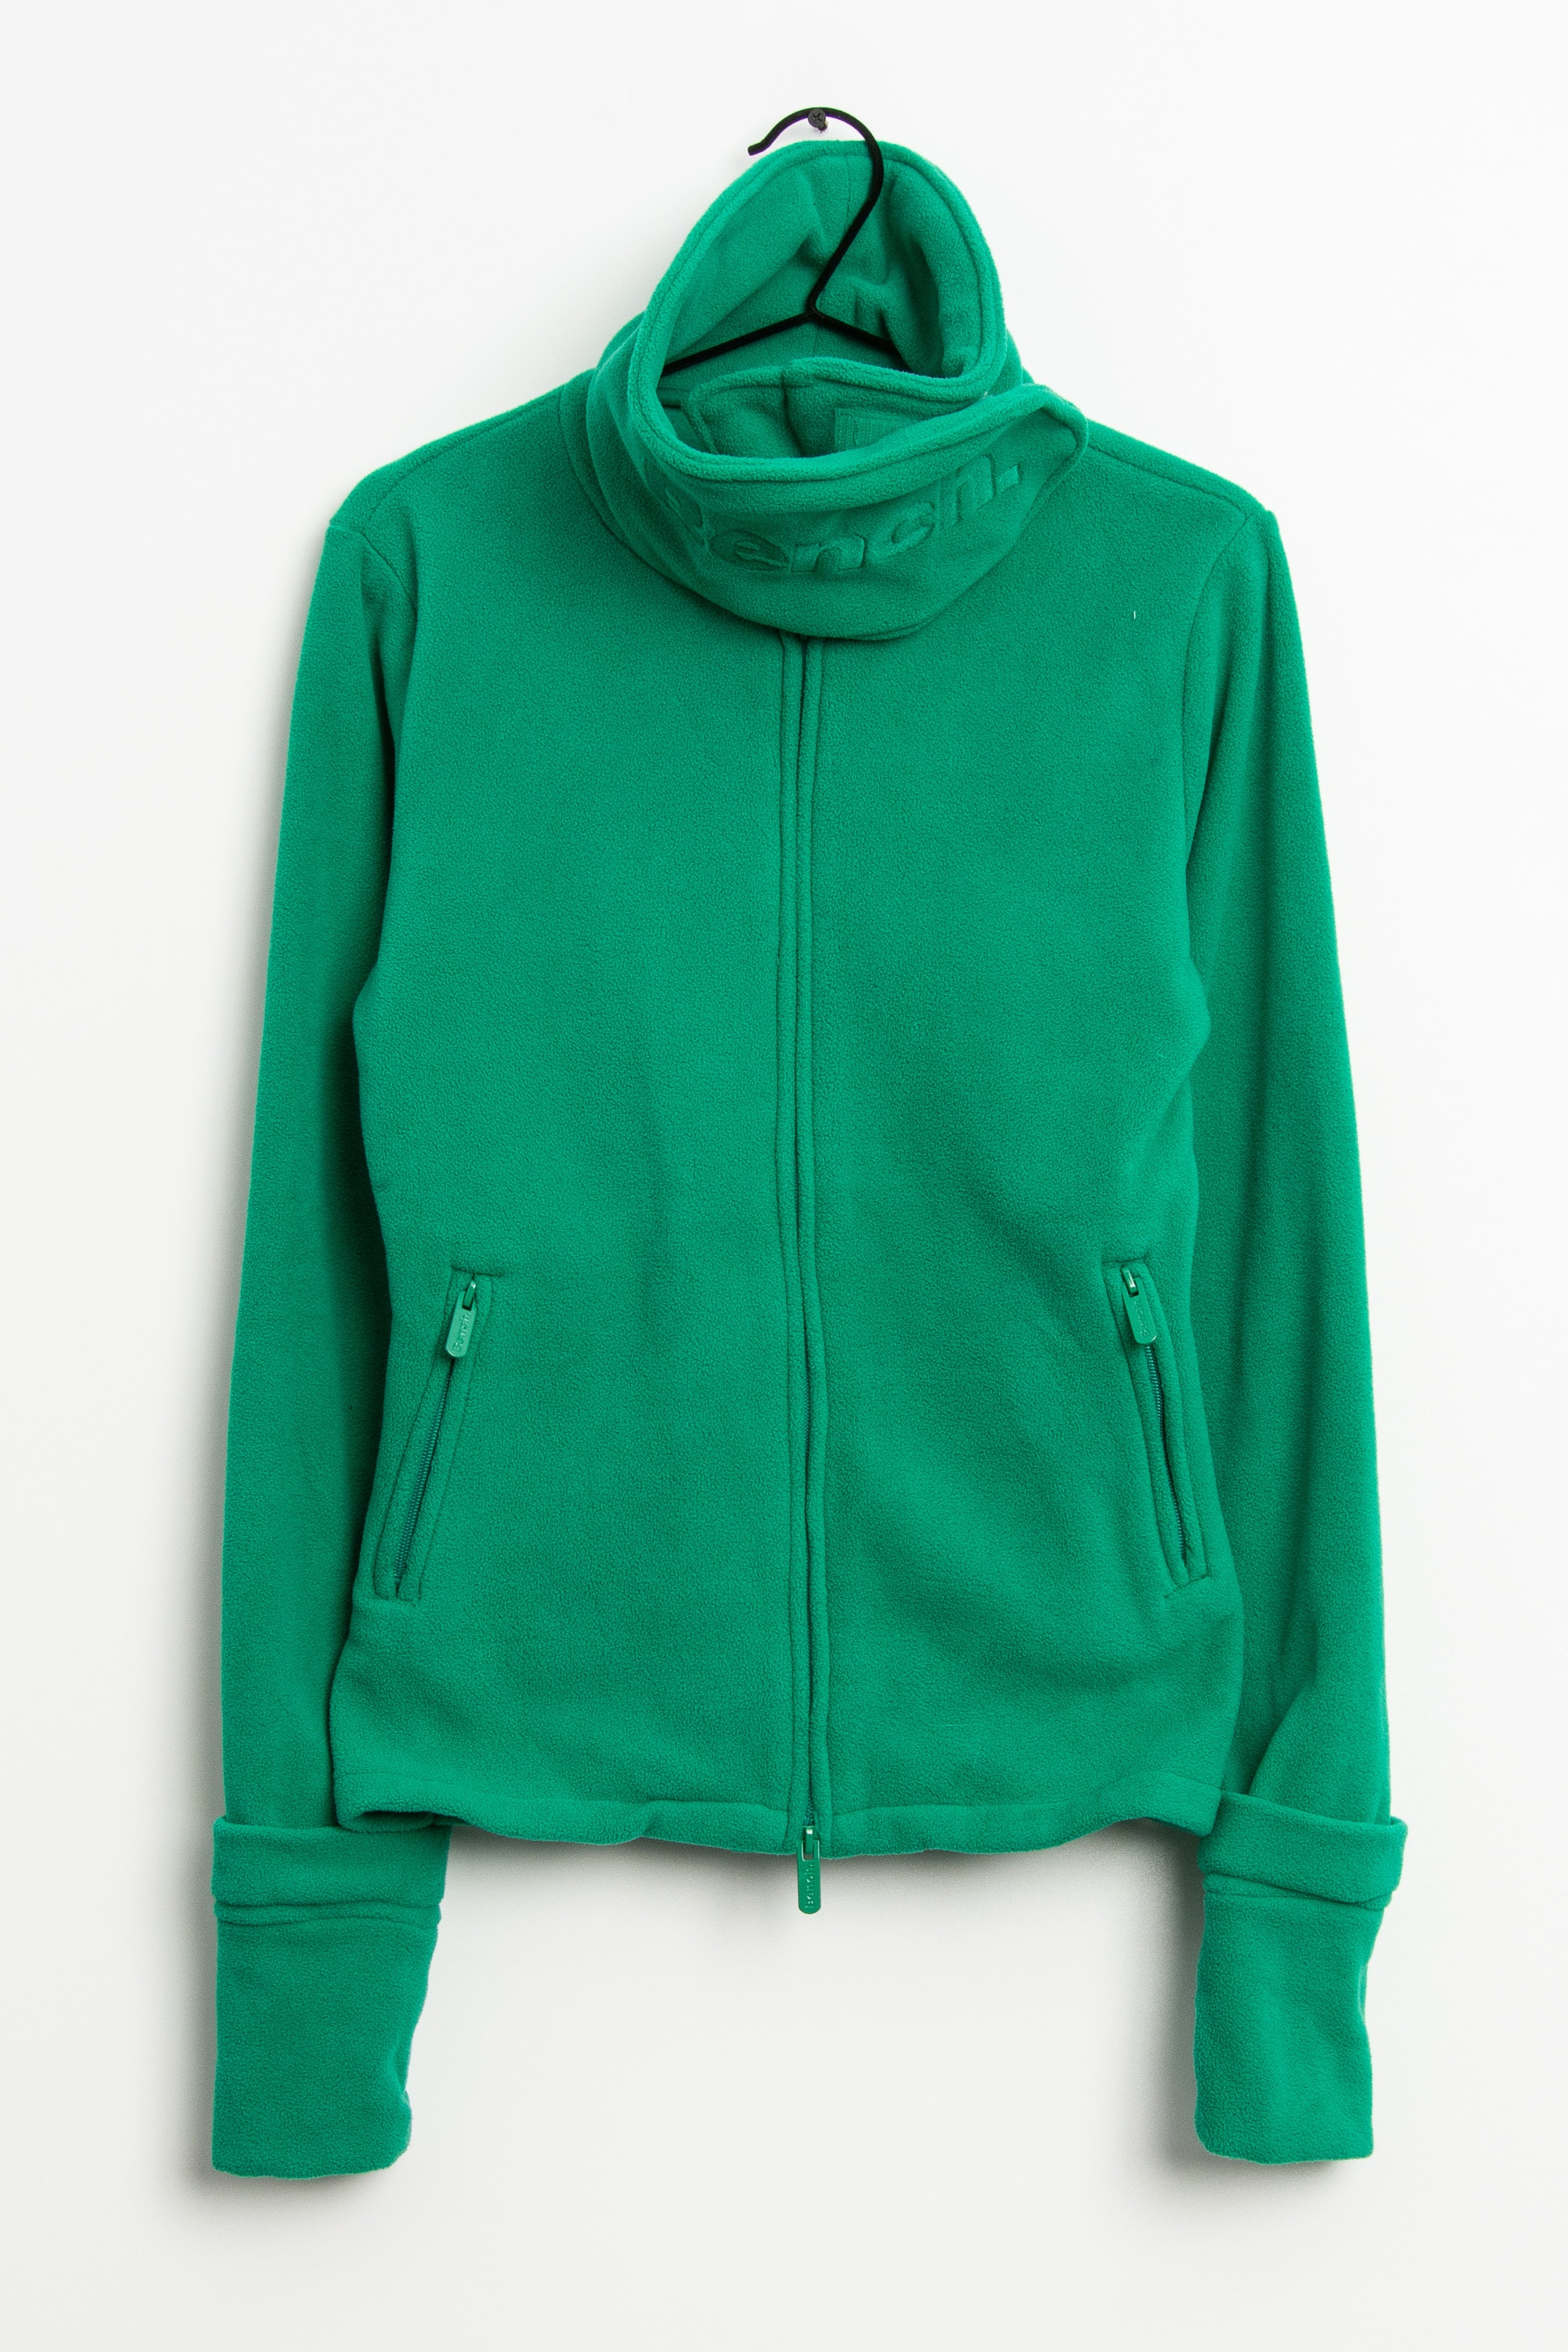 Bench Sweat / Fleece Grün Gr.L